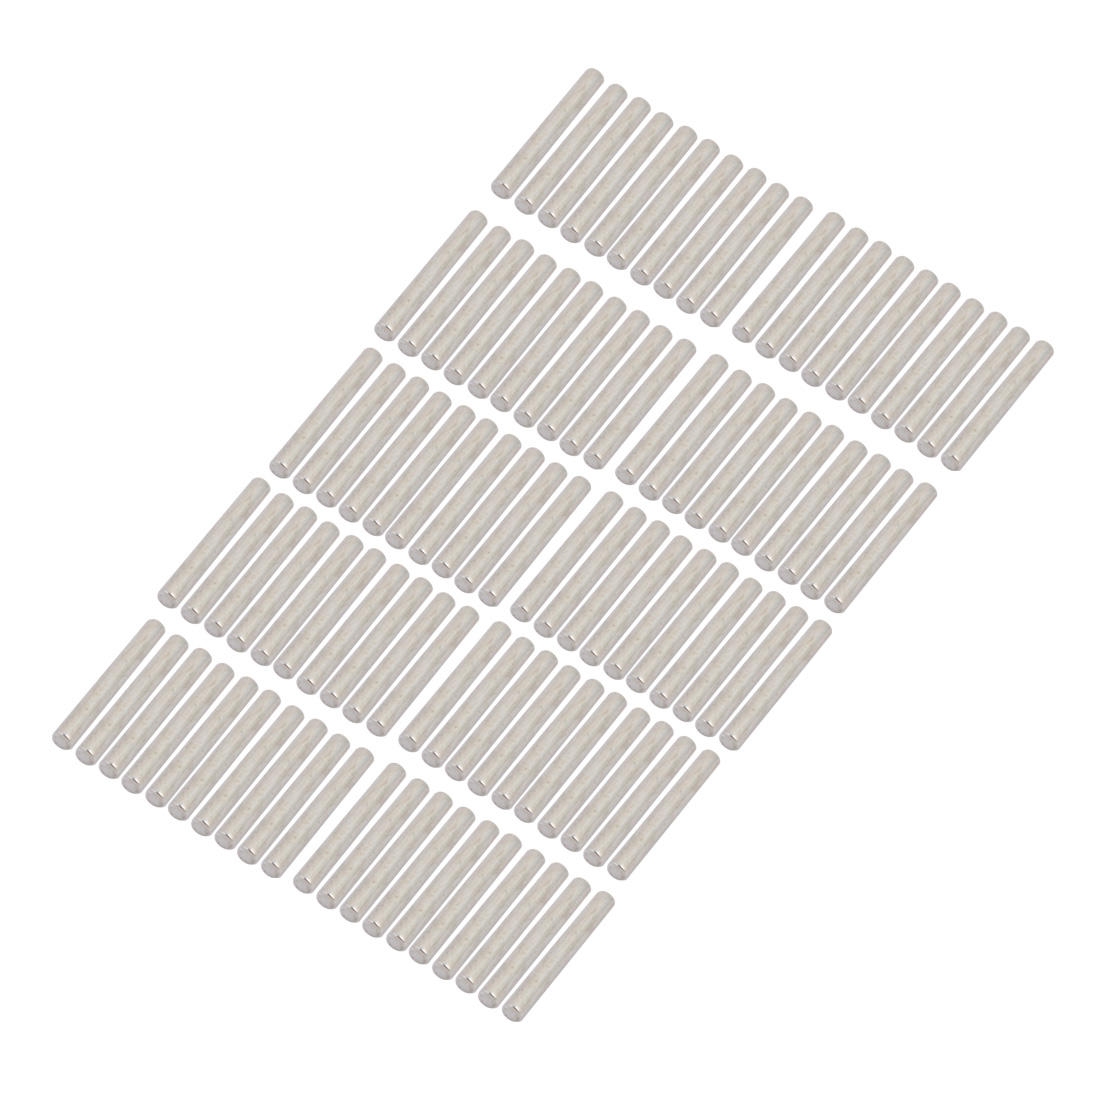 100Pcs Round Shaft Solid Steel Rods Axles 3mm x 25mm Silver Tone